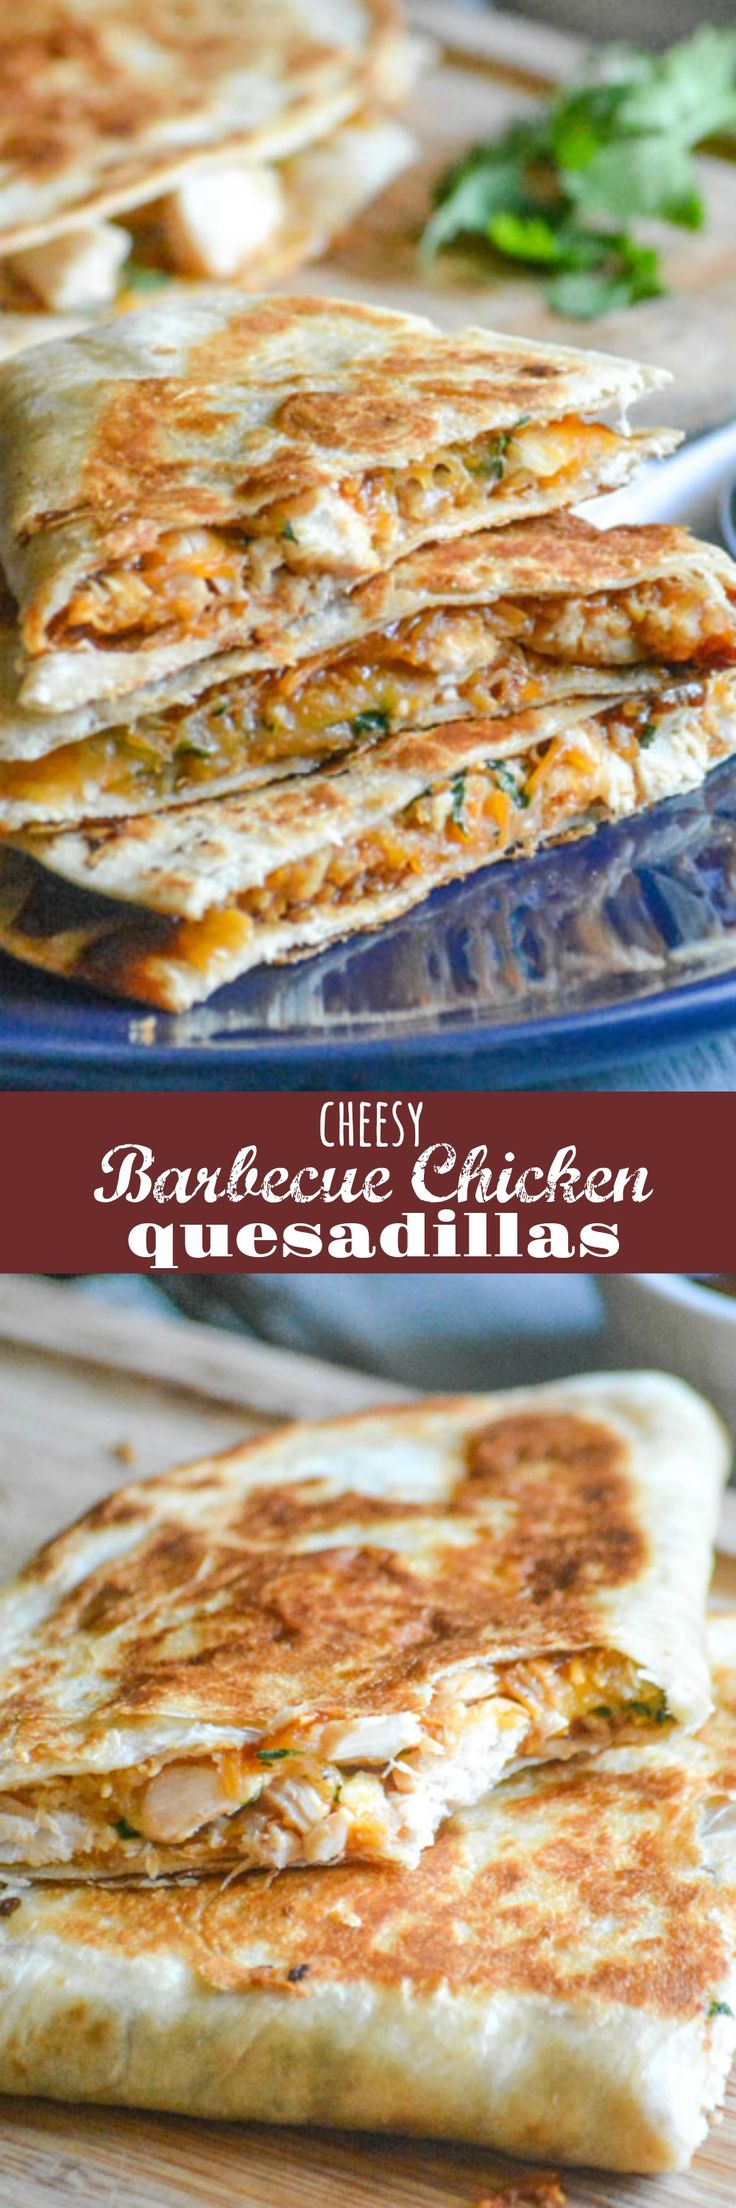 Cheesy Barbecue Chicken Quesadillas   Crispy quesadillas fit the bill for so many occasions. Lunch, dinner, even a Game Day snack these quick & easy Cheesy Barbecue Chicken Quesadillas are sure to be a home run with whatever crew you're serving.   4 Sons 'R' Us